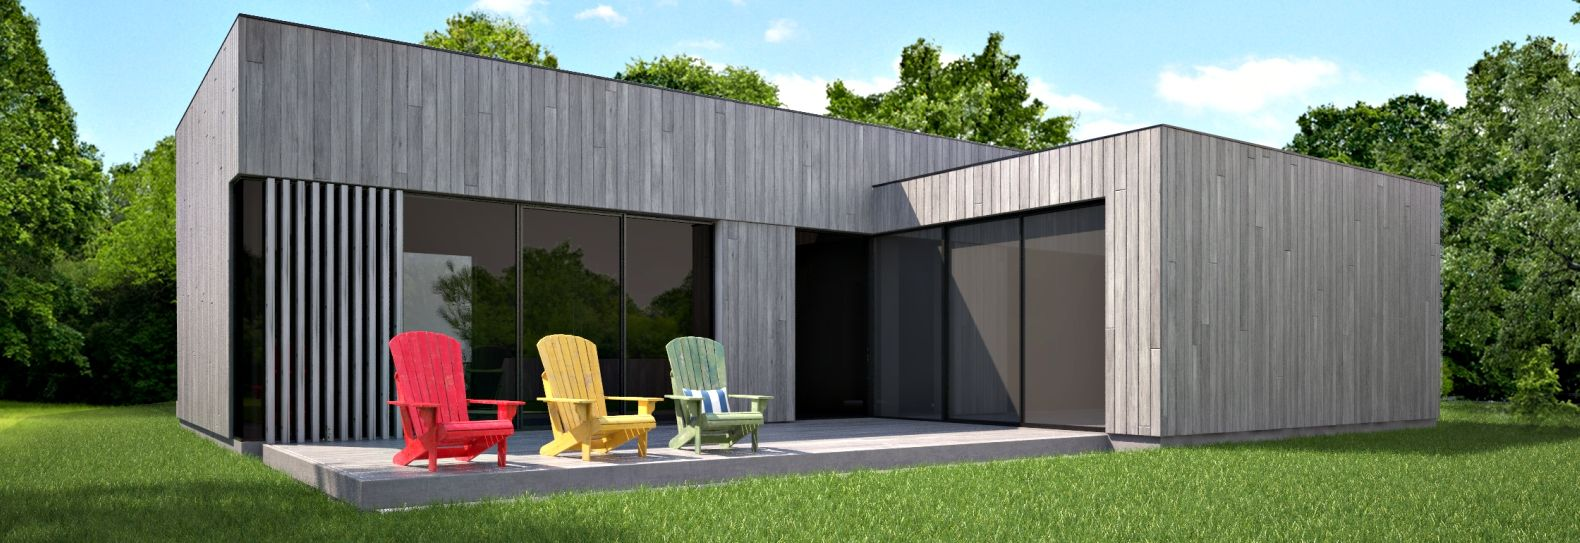 Custom ordered tiny homes provide compact living options without sacrificing on comfort #compactliving